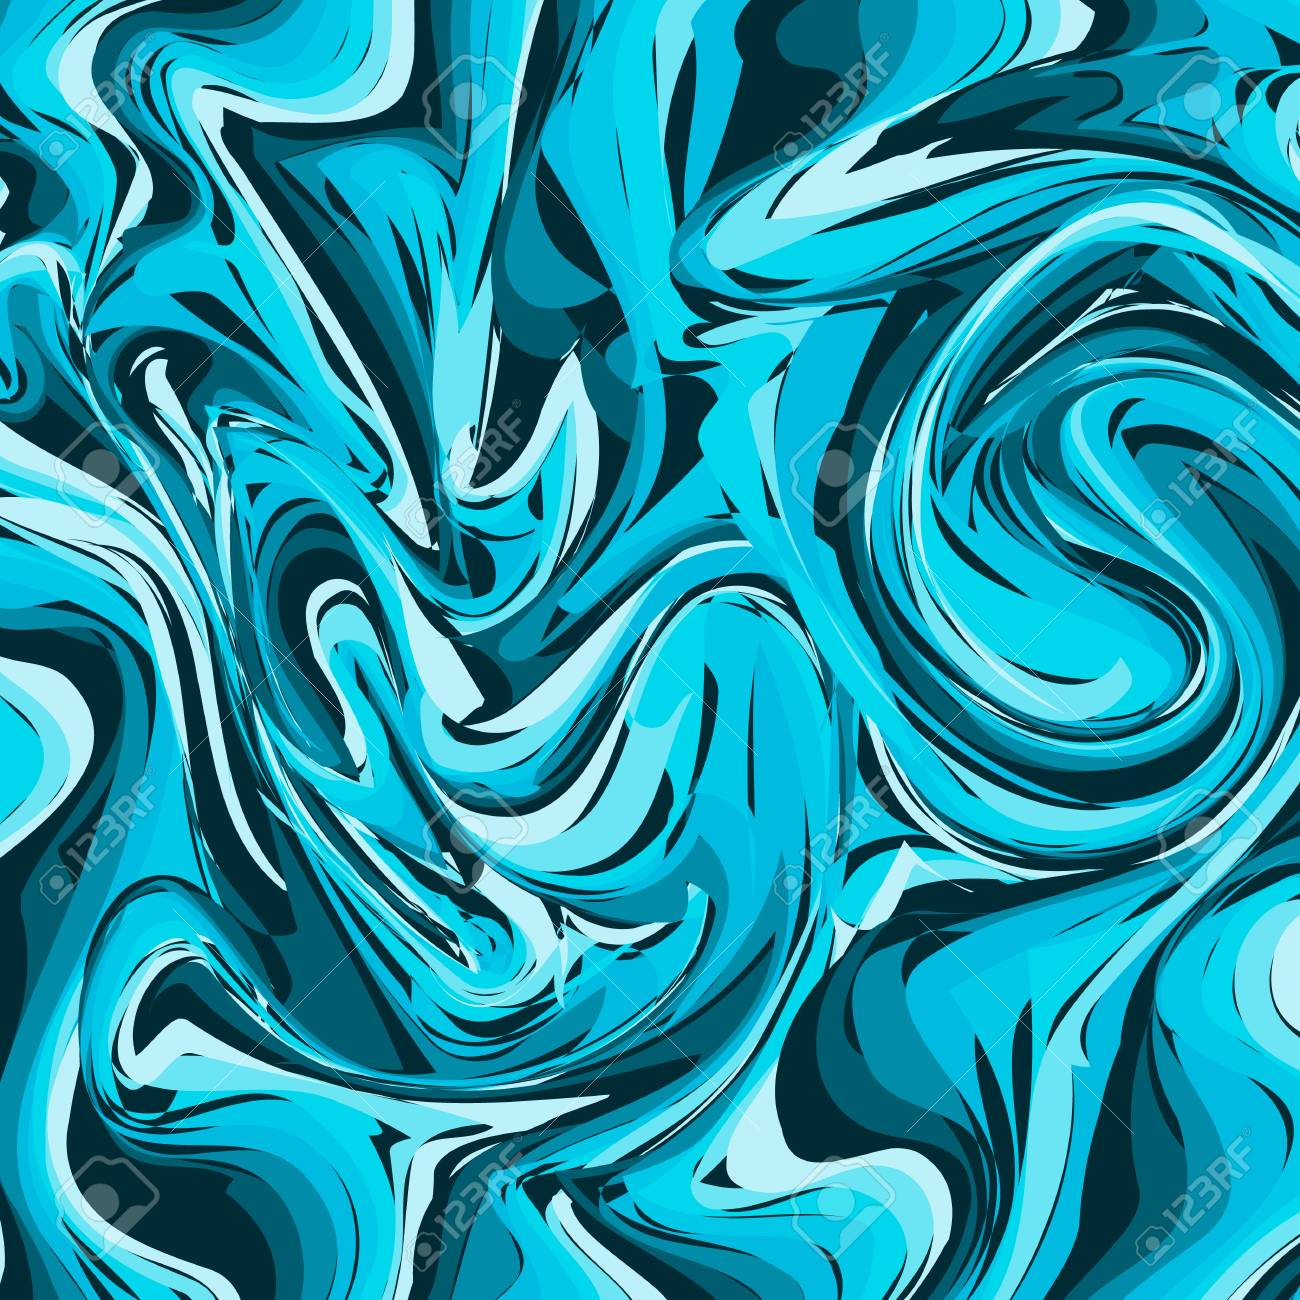 Dark And Light Blue Mixed Marble Texture Background Liquid Effect